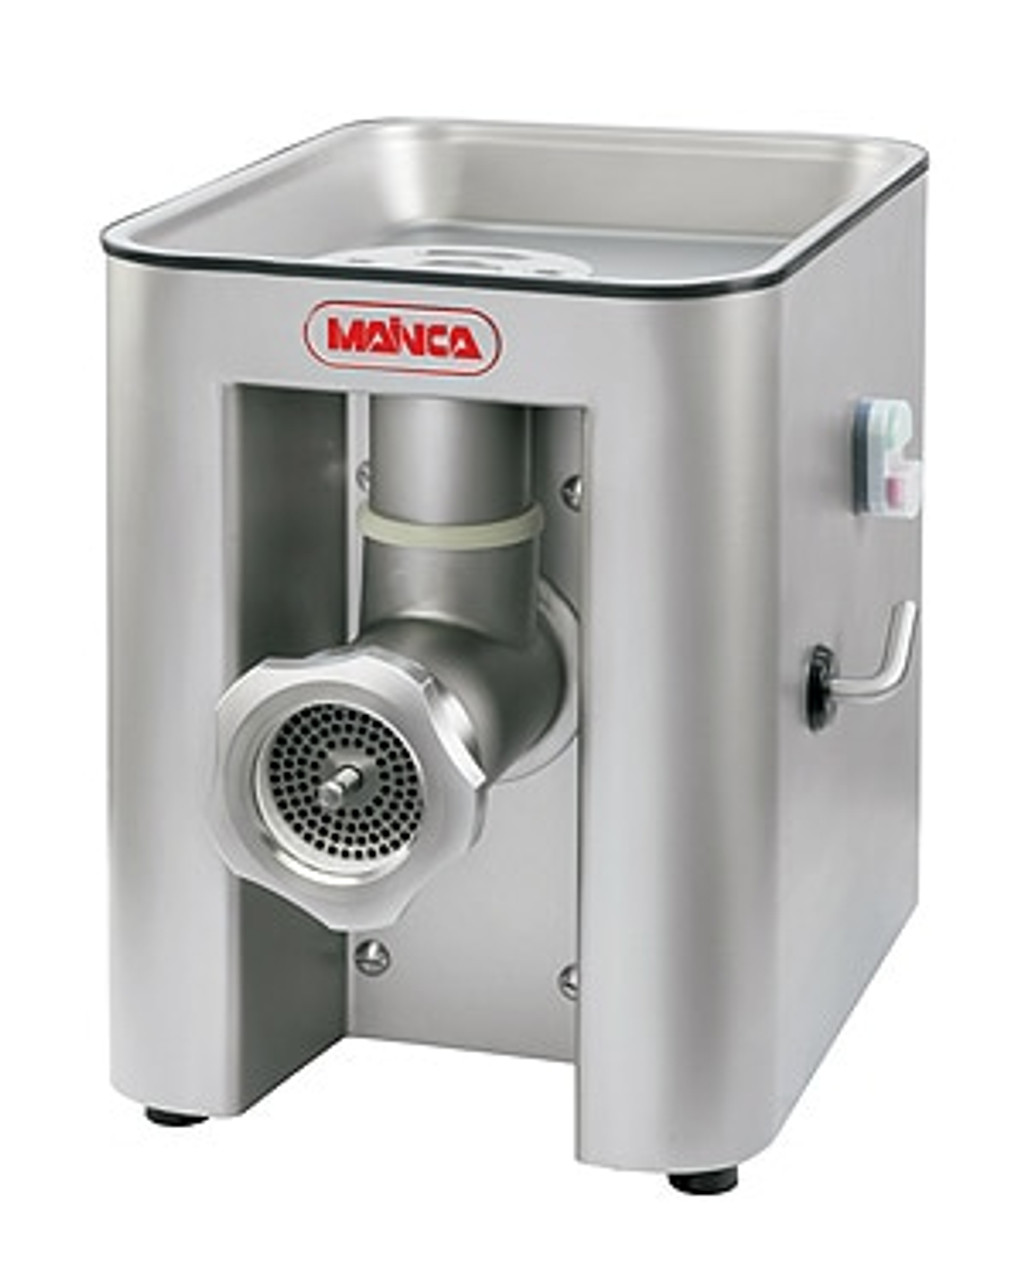 Mainca PC82/82A Meat Mincer - Single Phase